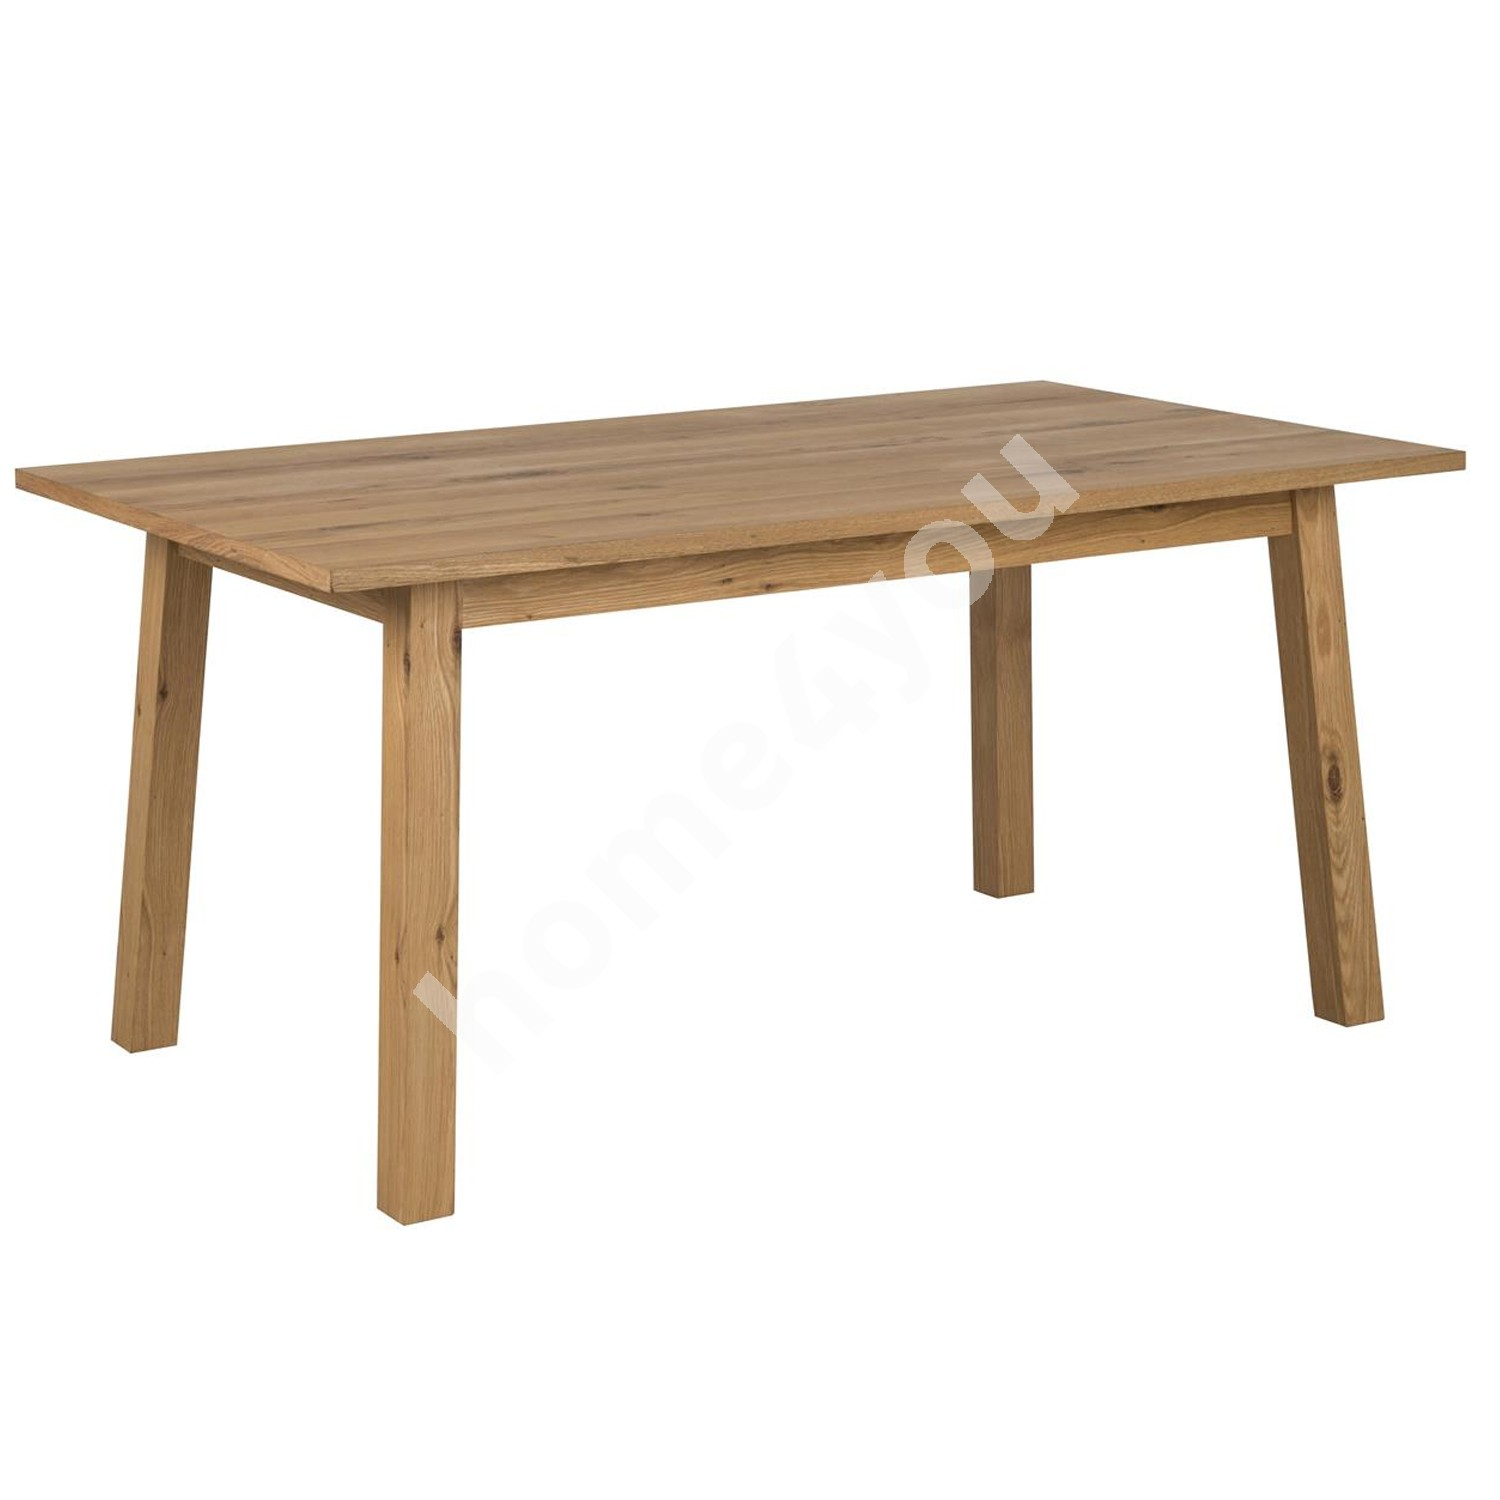 Dining table CHARA 160x90xH75cm, oak